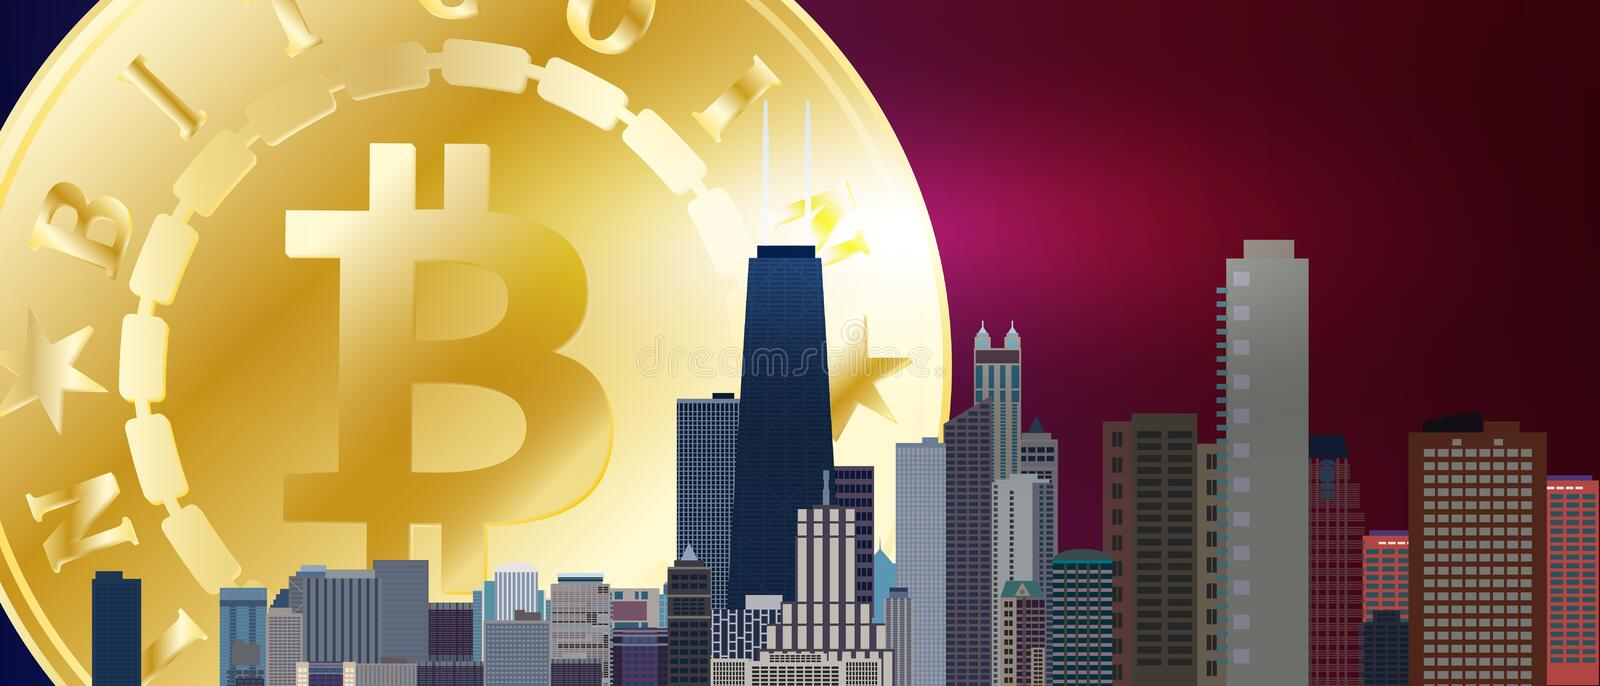 Chicago Downtown Business And Finance Area Background With